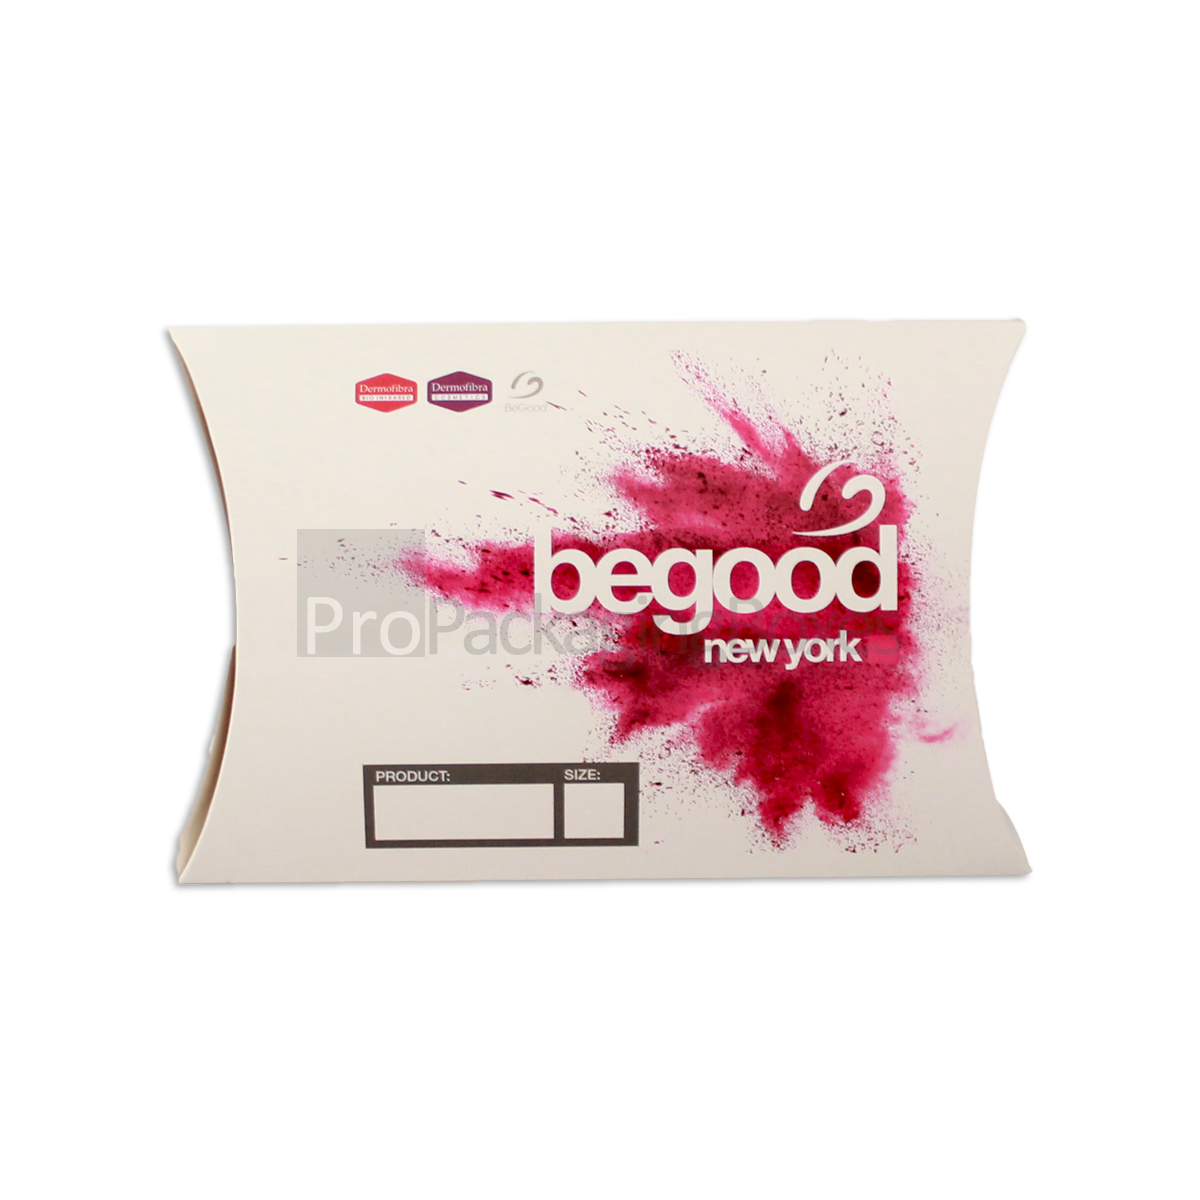 Customized Pillow Packaging Boxes Suppliers-03